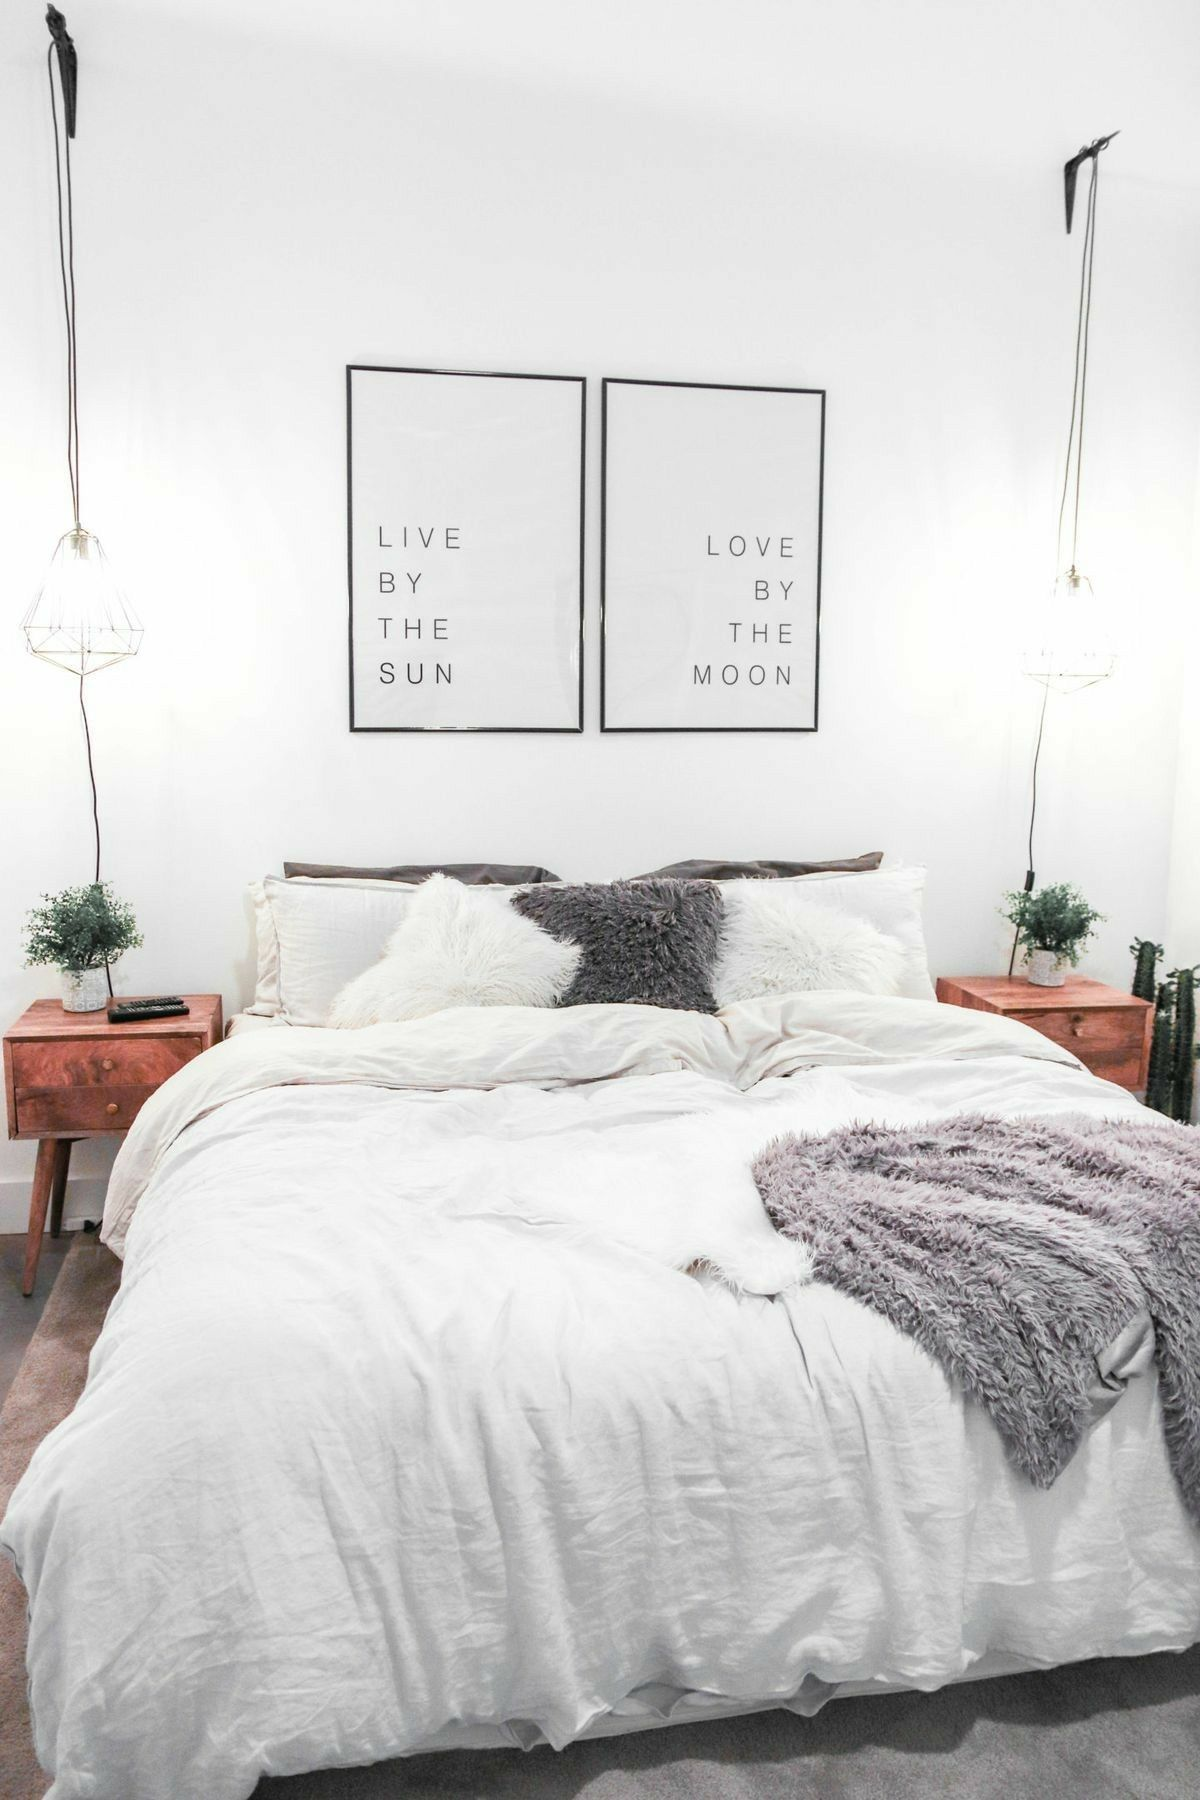 Apartment Bedroom Wall Decor Http Lvluxhome Net Apartment